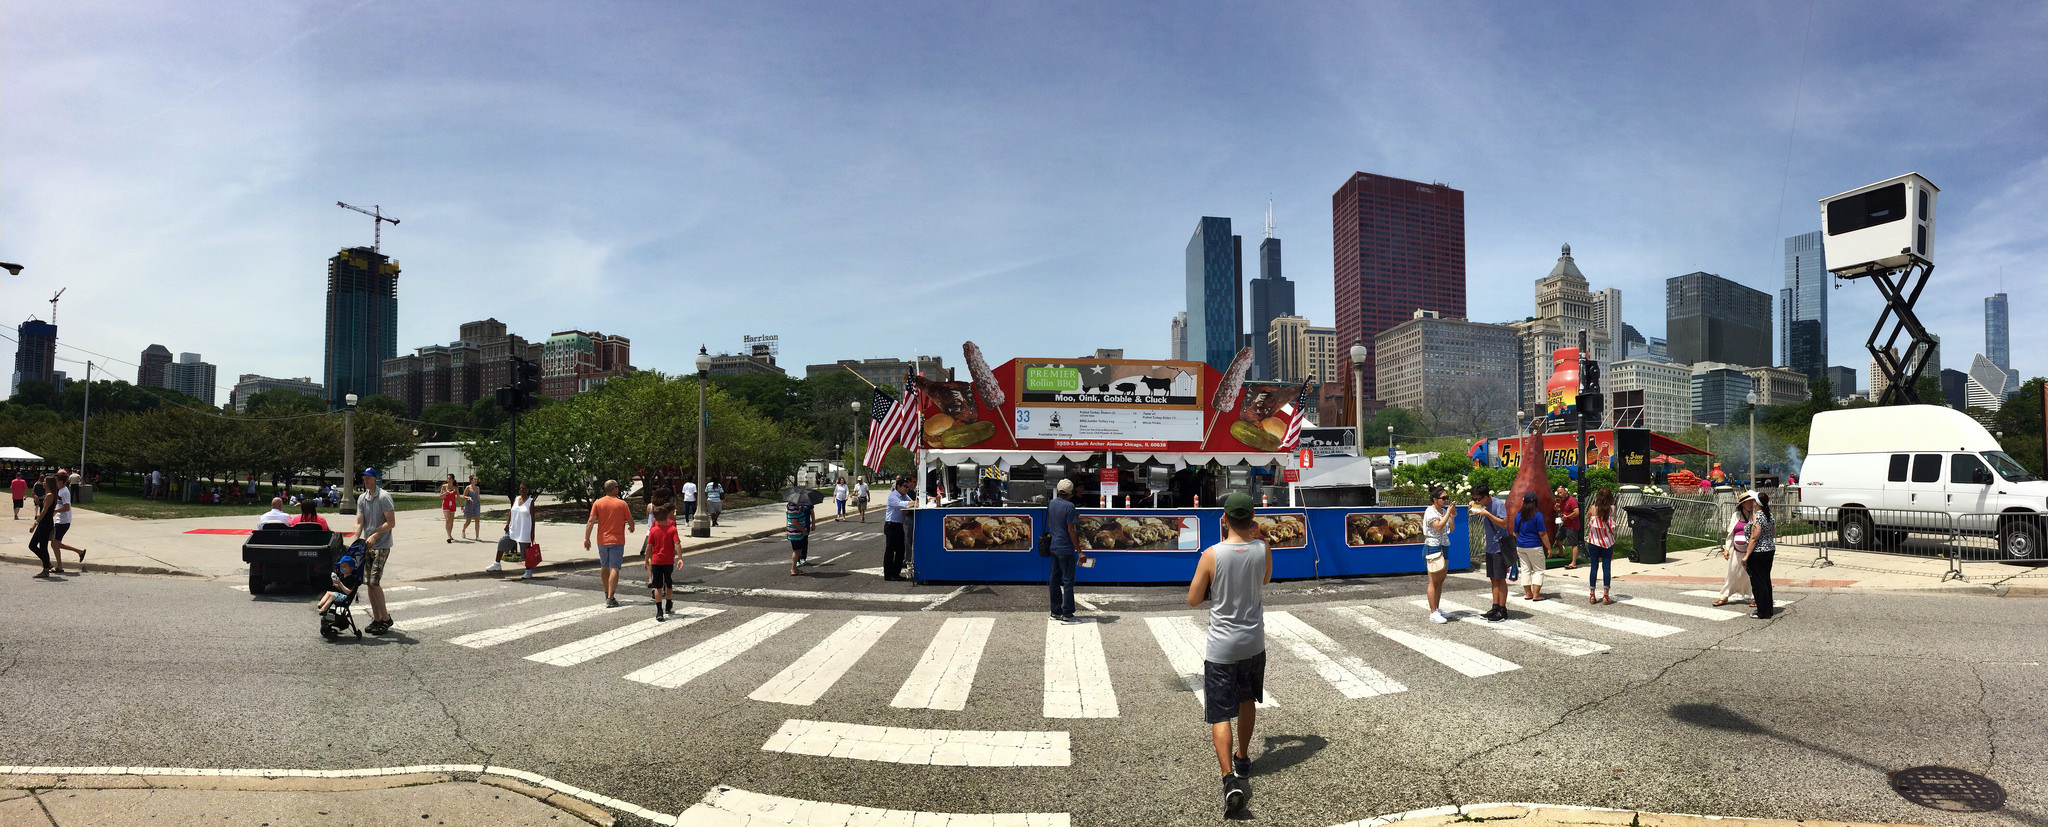 Premier Rollin BBQ booth at Taste of Chicago, offering turkey leg